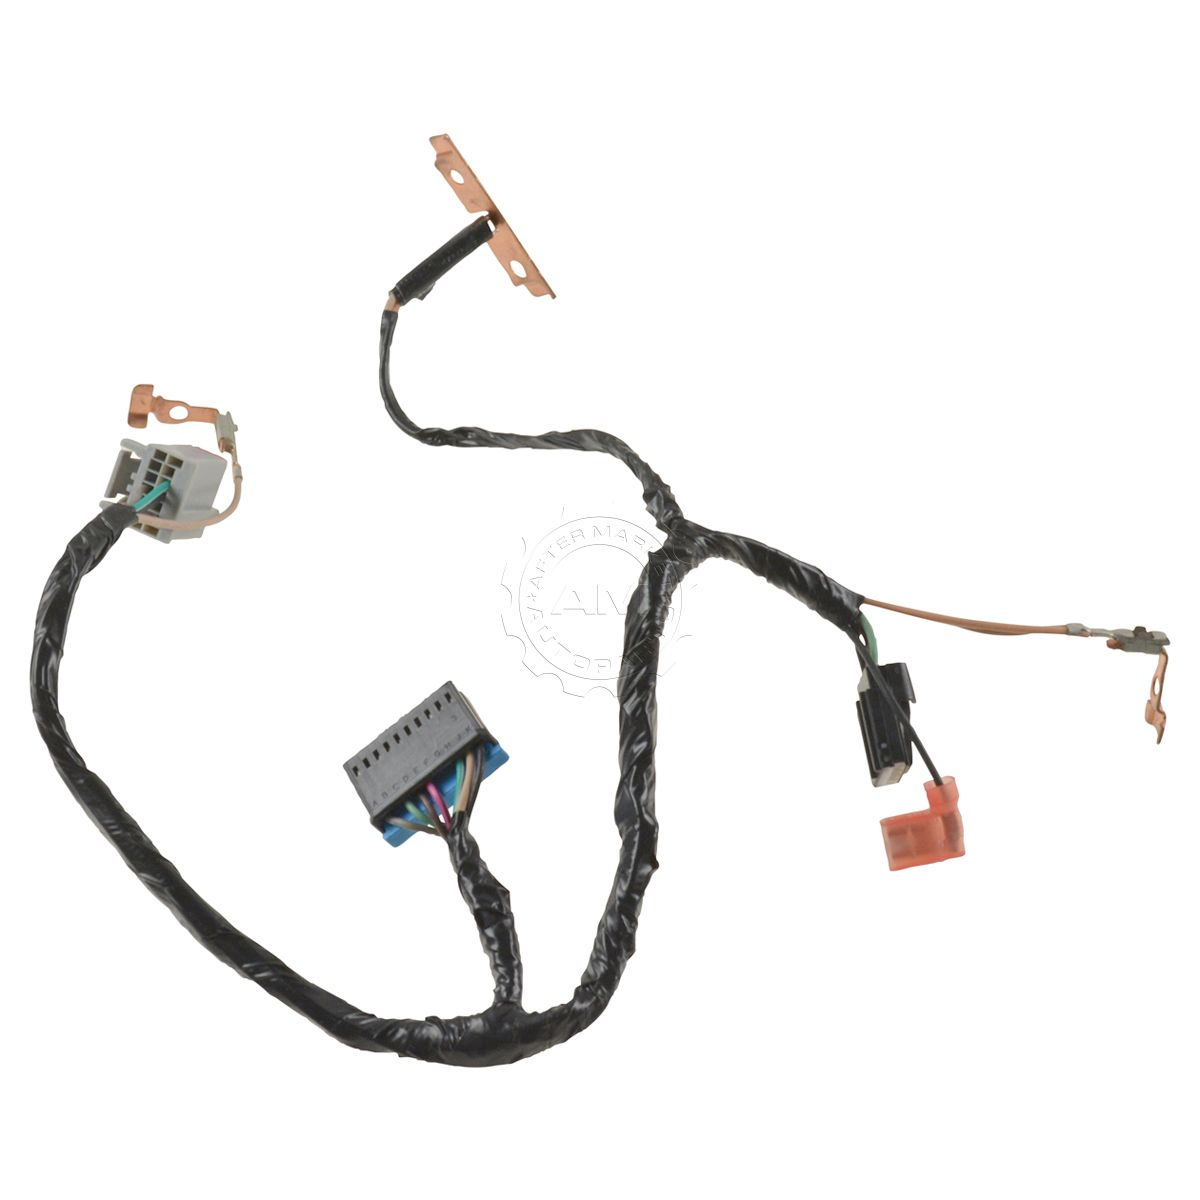 hight resolution of gmc steering column wiring harness